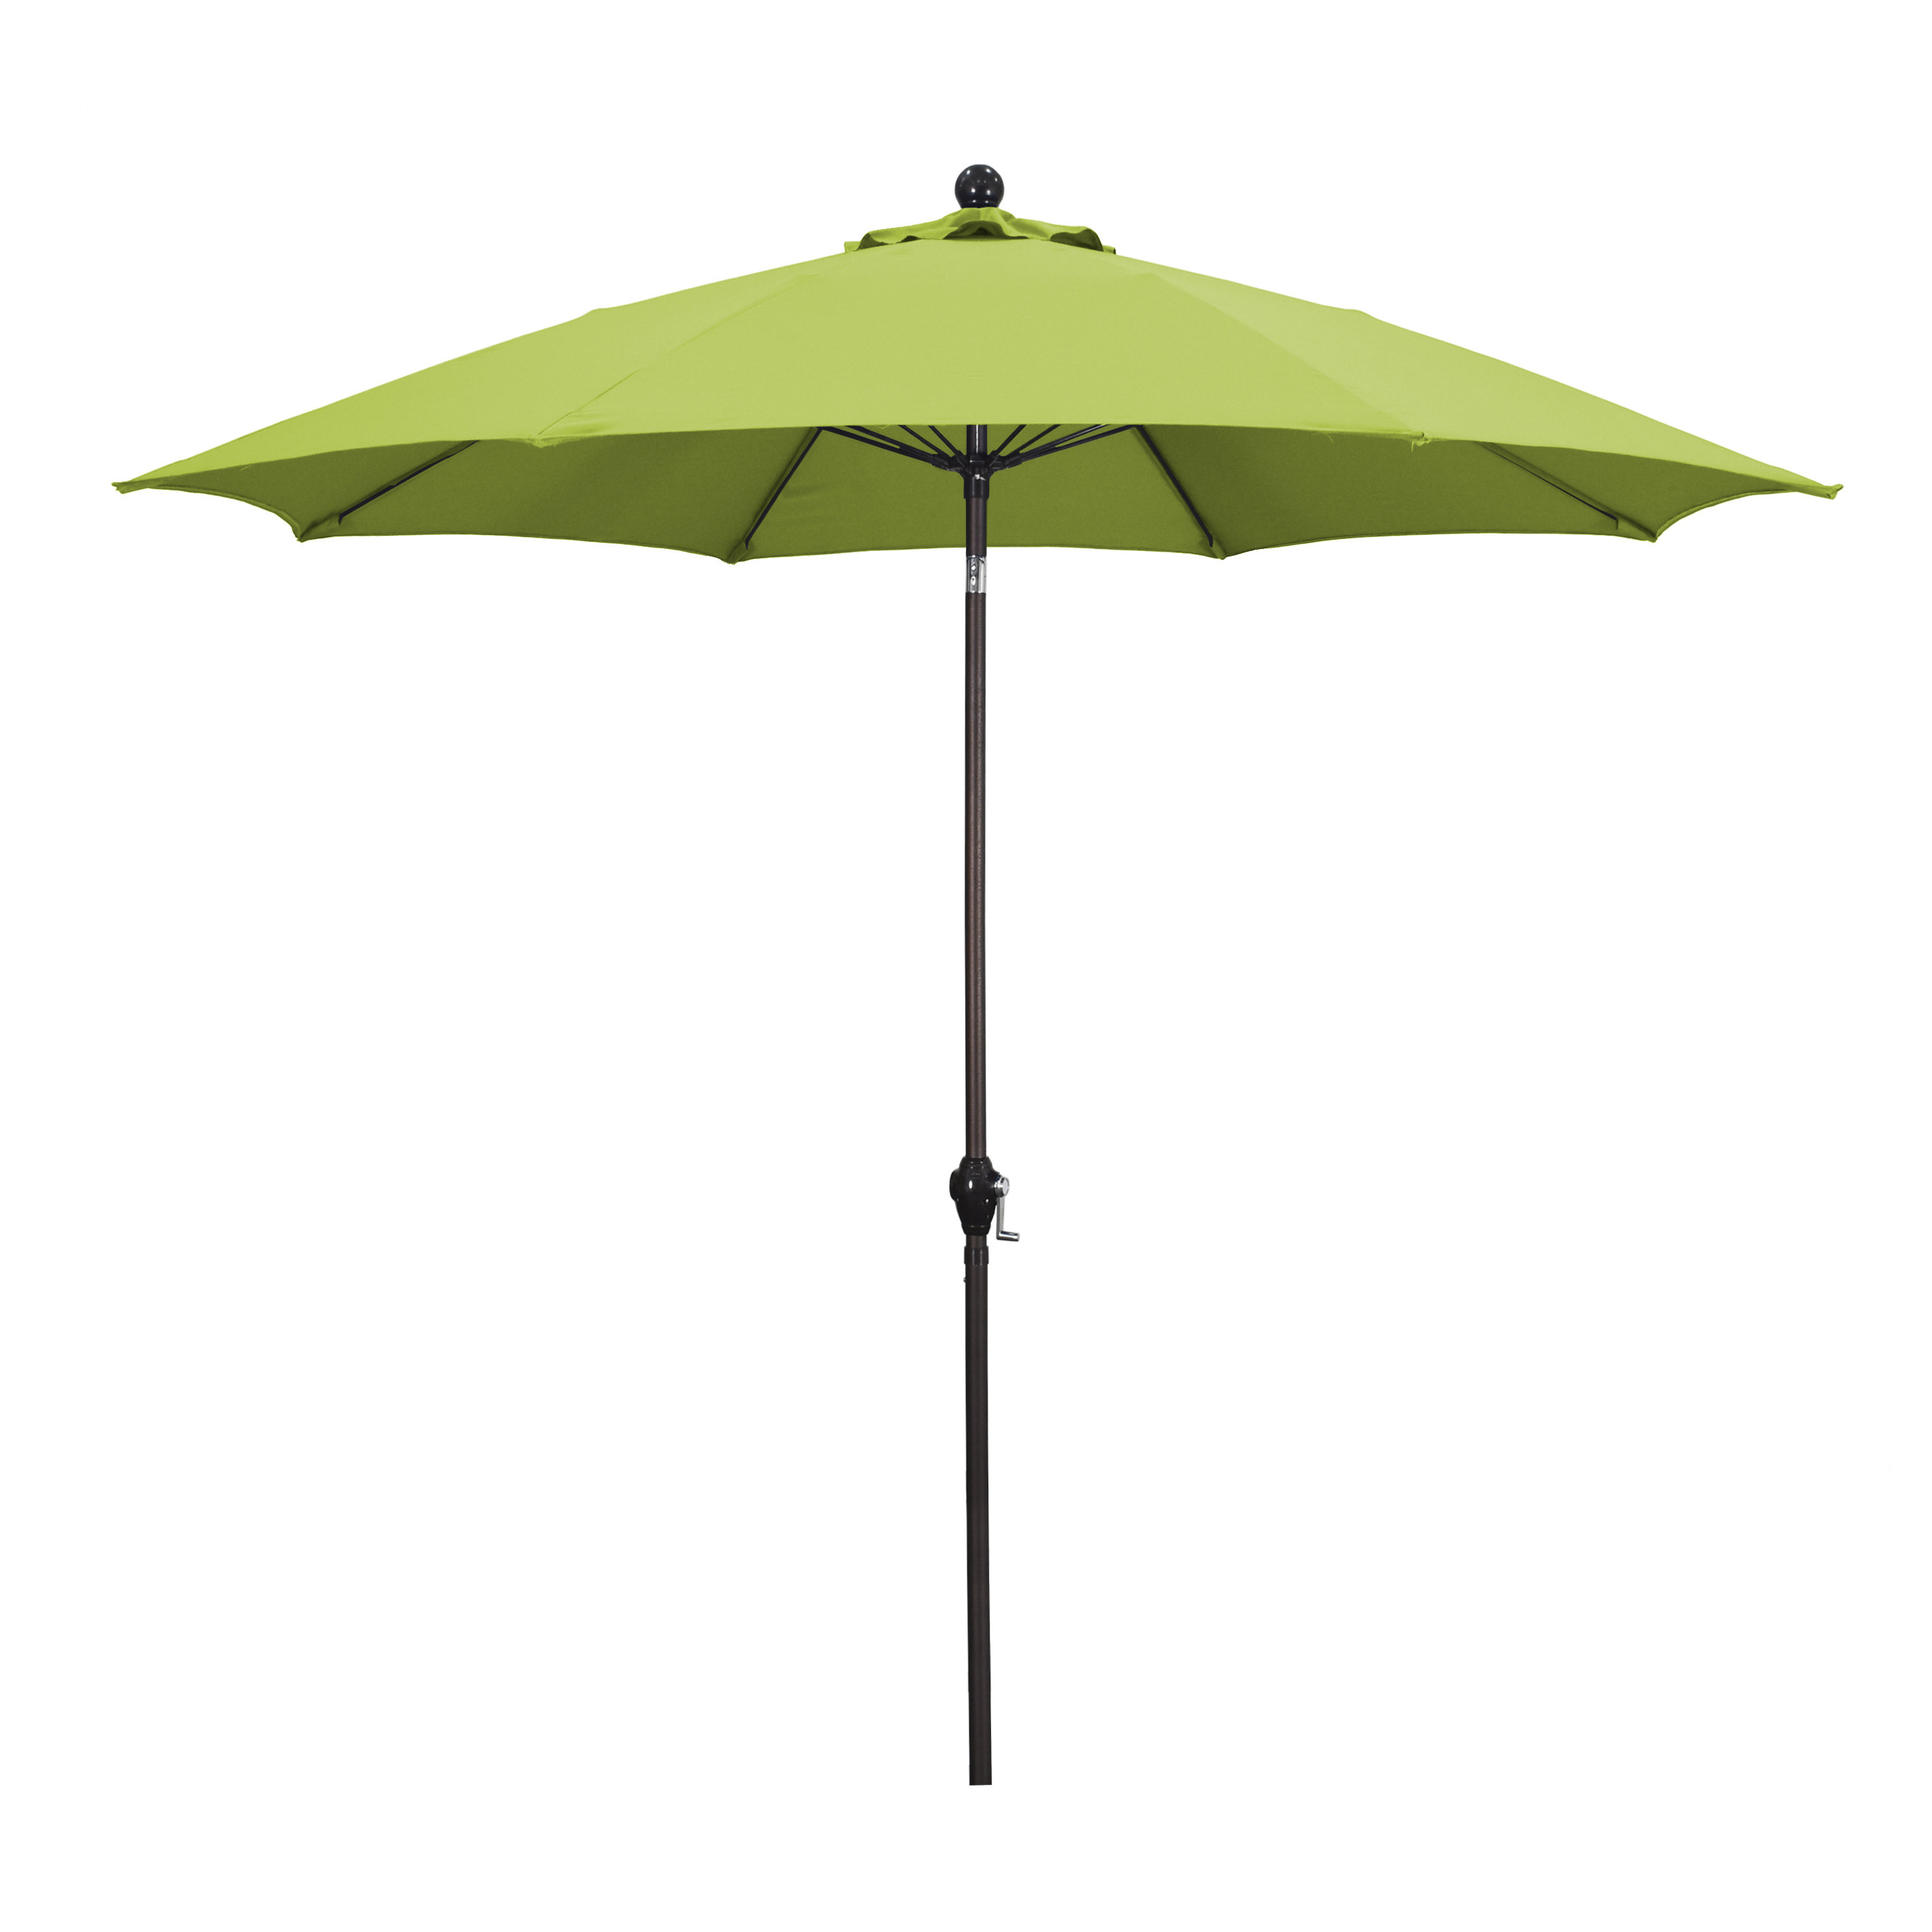 Fashionable Ryant Market Umbrellas With Regard To 9' Market Umbrella (View 5 of 20)